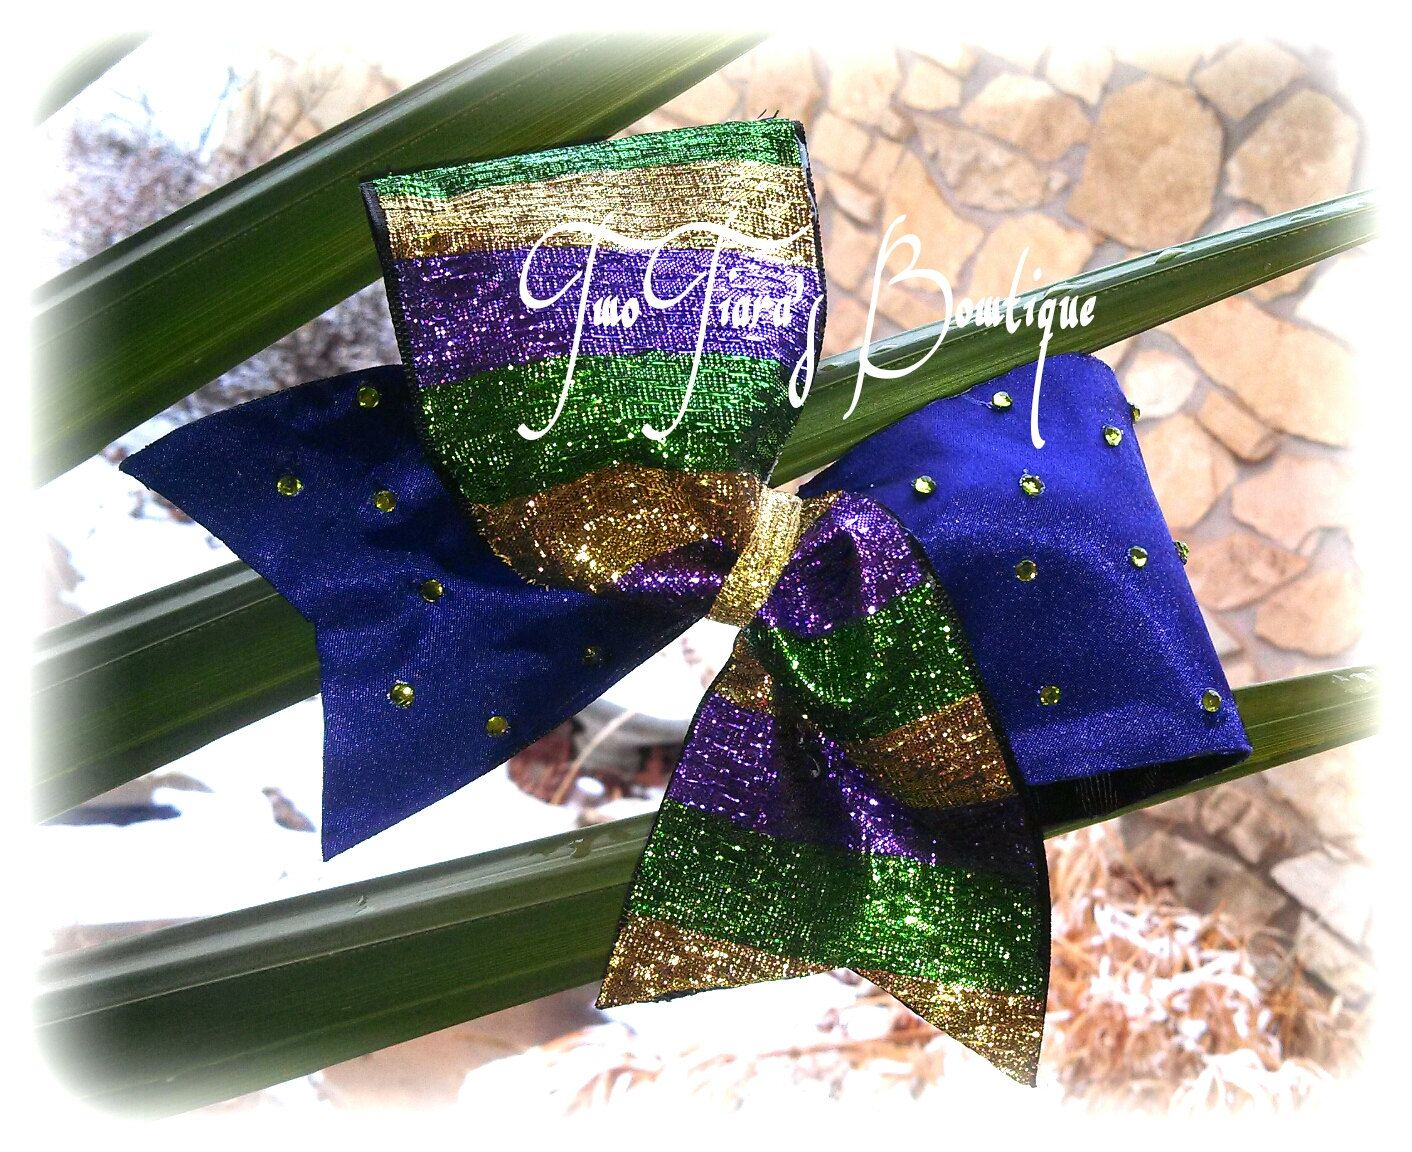 Mardi Gras Tick Tock Cheer Bow Team Discounts All Star Dance by Two Tiara's Bowtique on Etsy or Facebook group